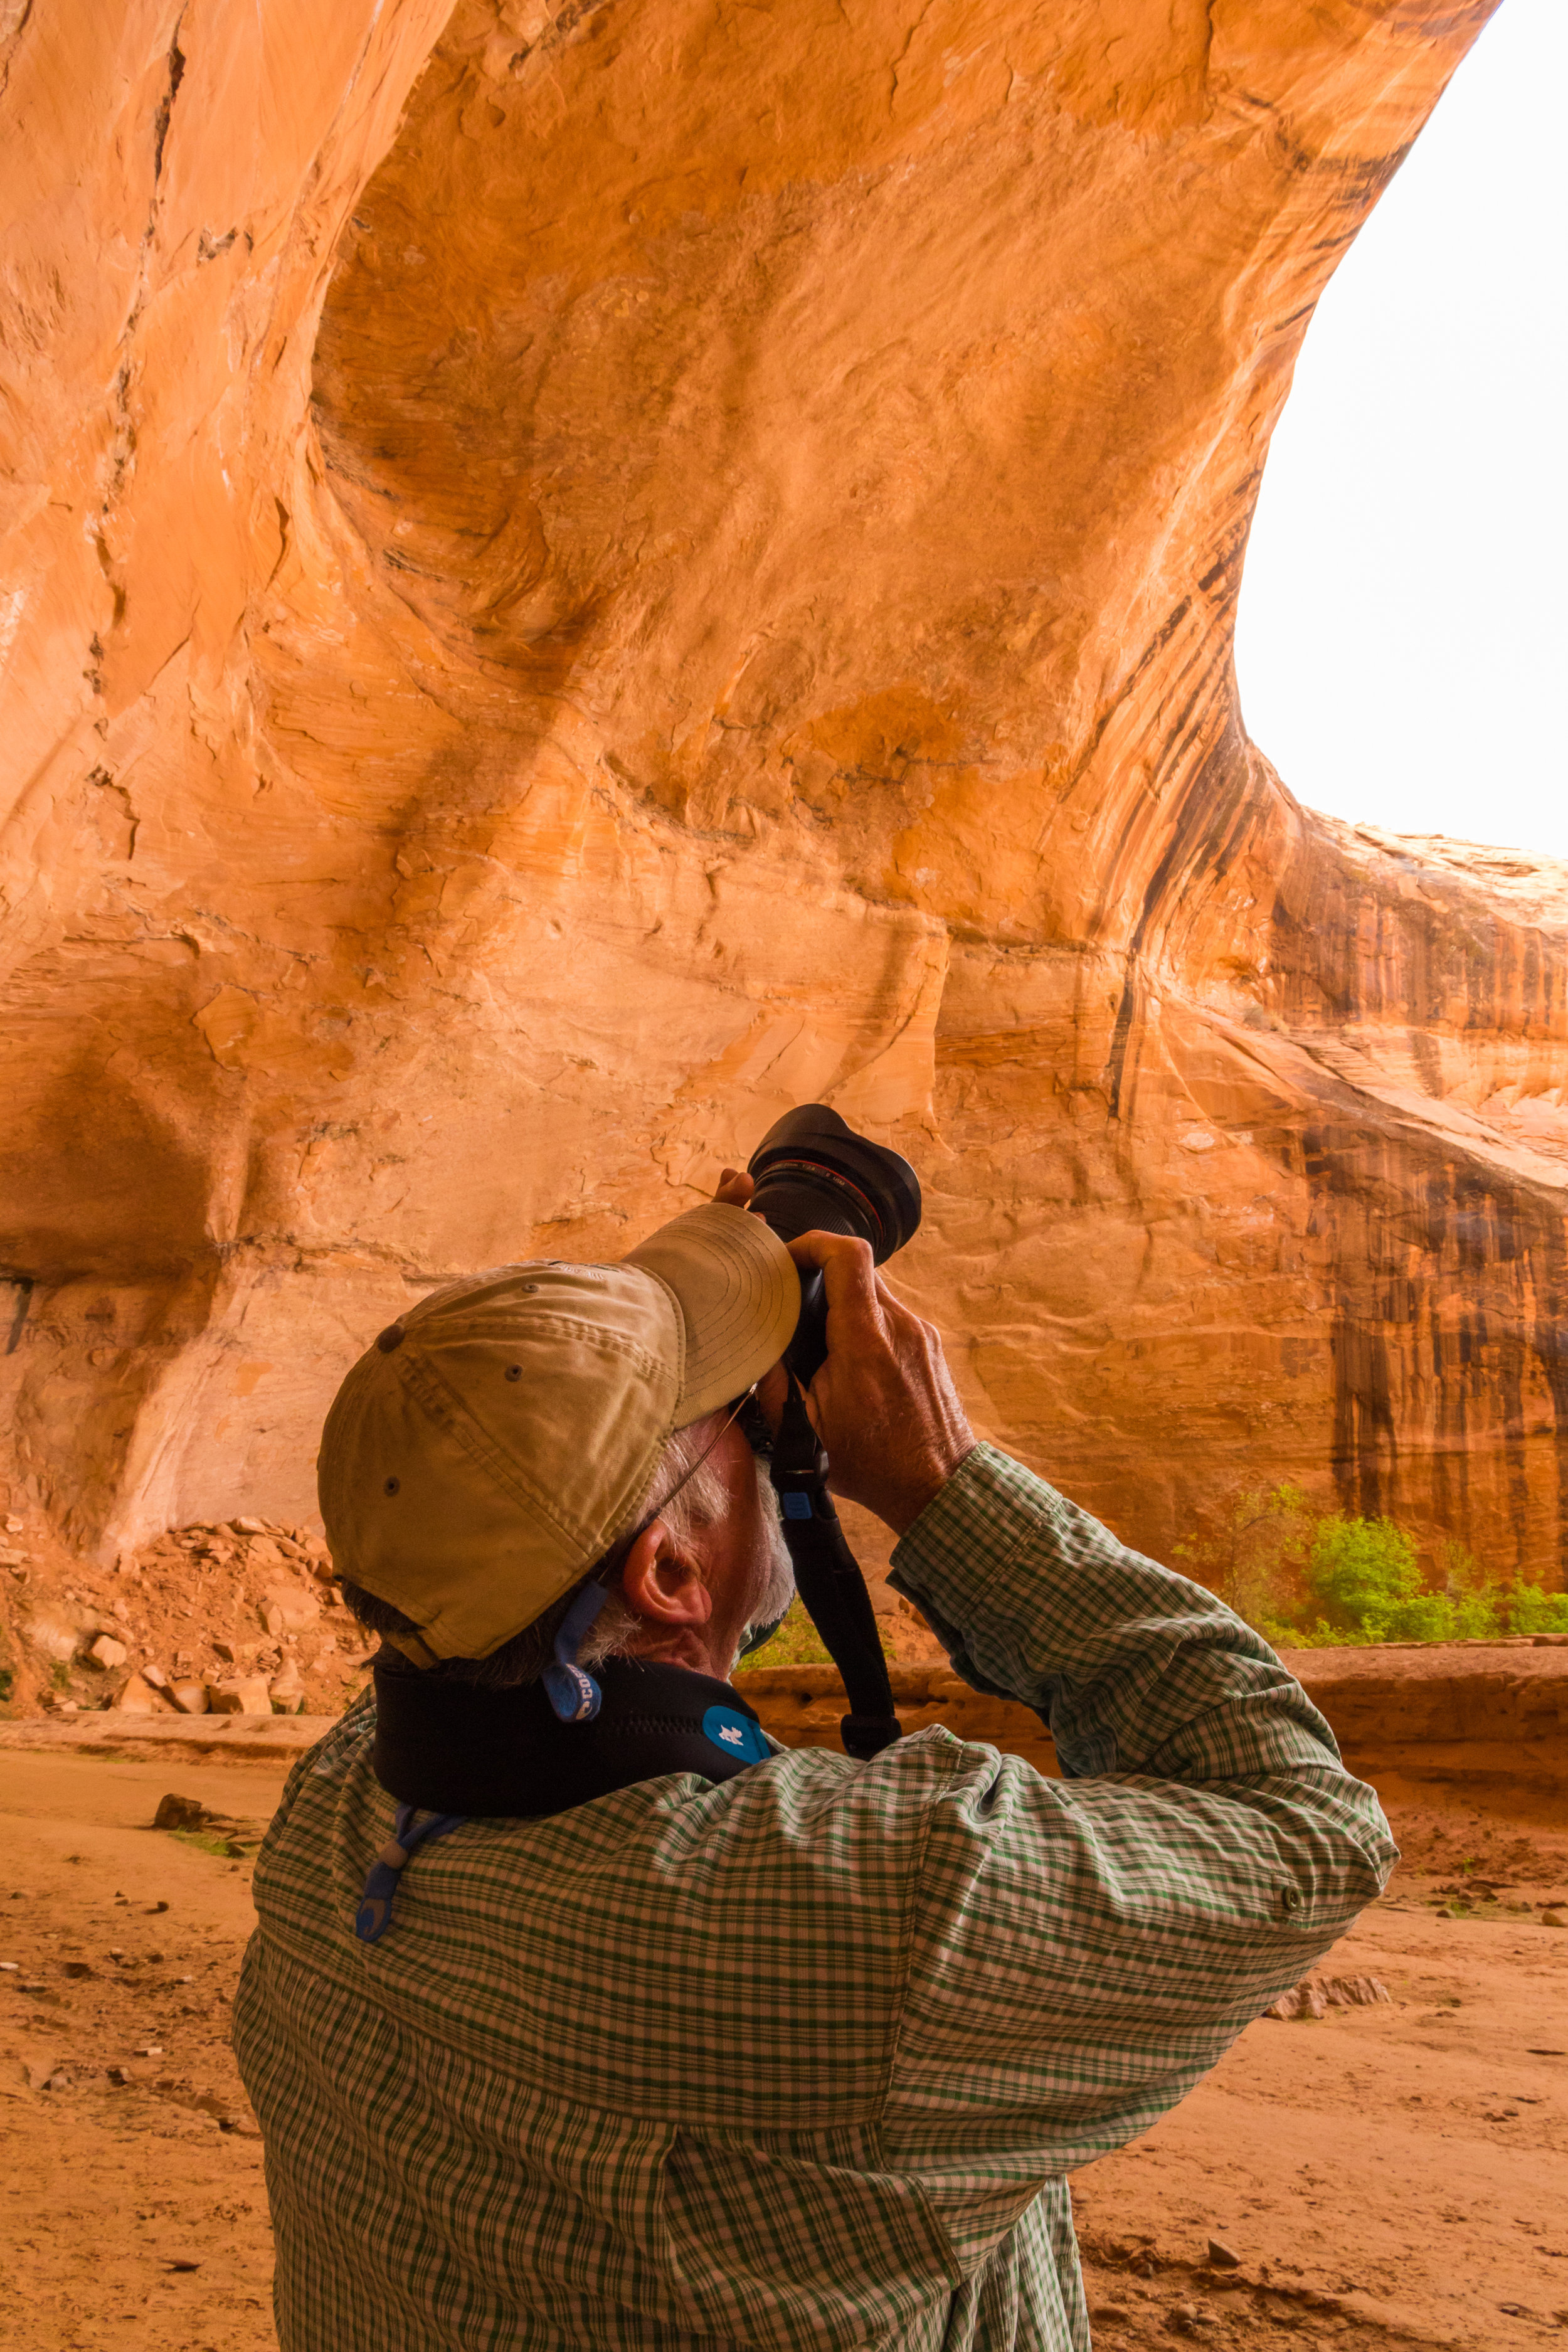 Coyote Gulch, Dave, Image # 1221